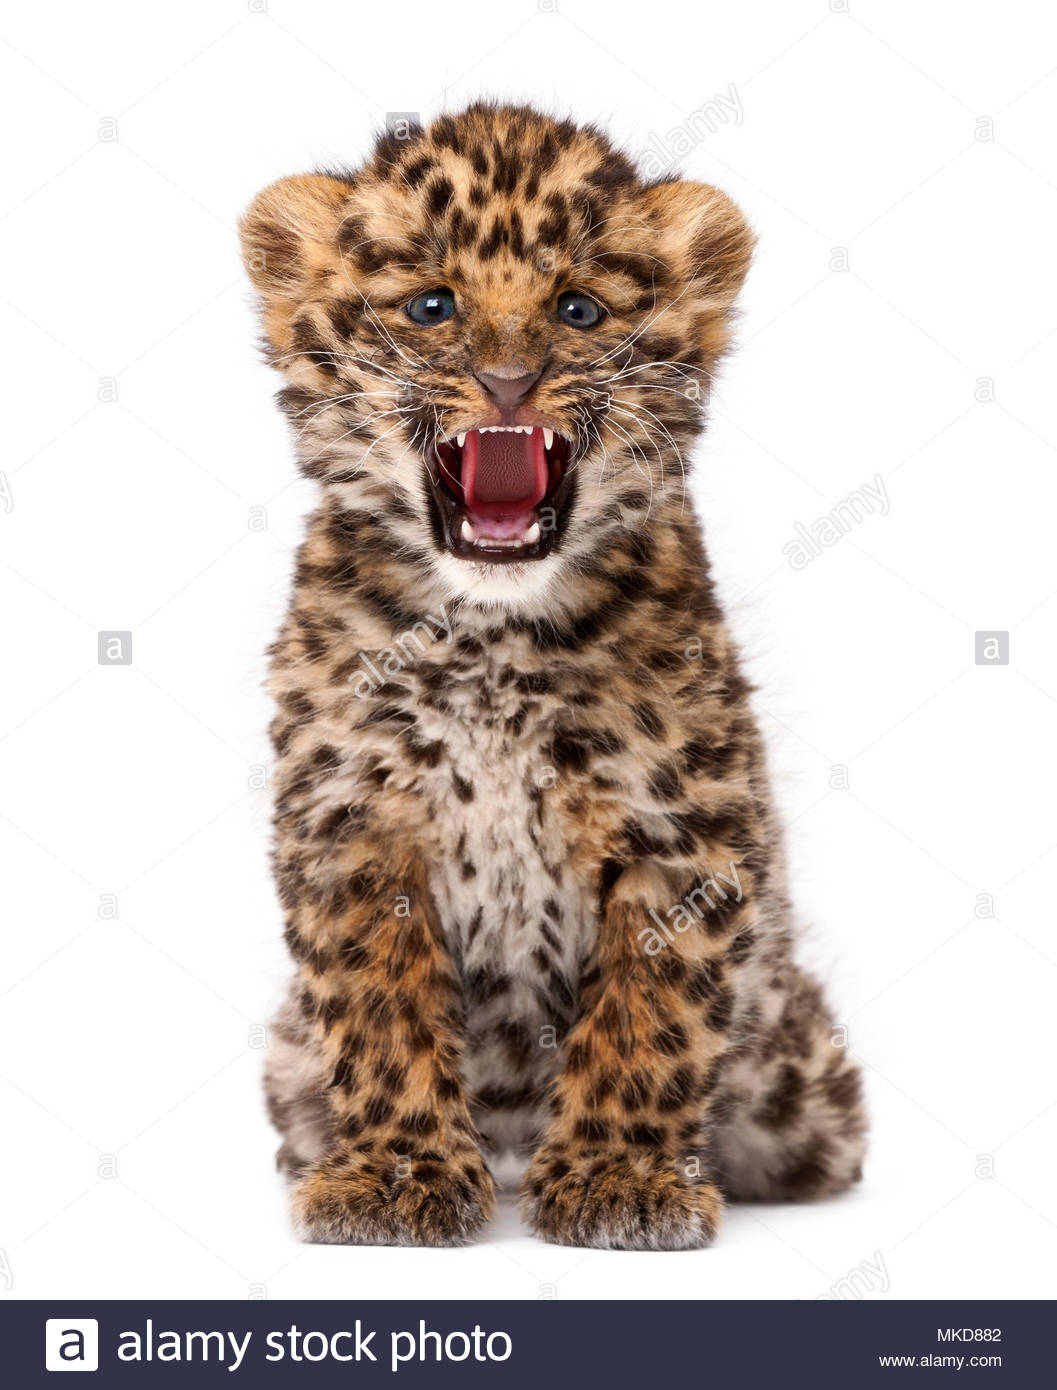 Amur leopard cub, (Panthera pardus orientalis), 9 weeks old, roaring against white background Mulhouse Zoological and Botanical Park, France - Stock Image